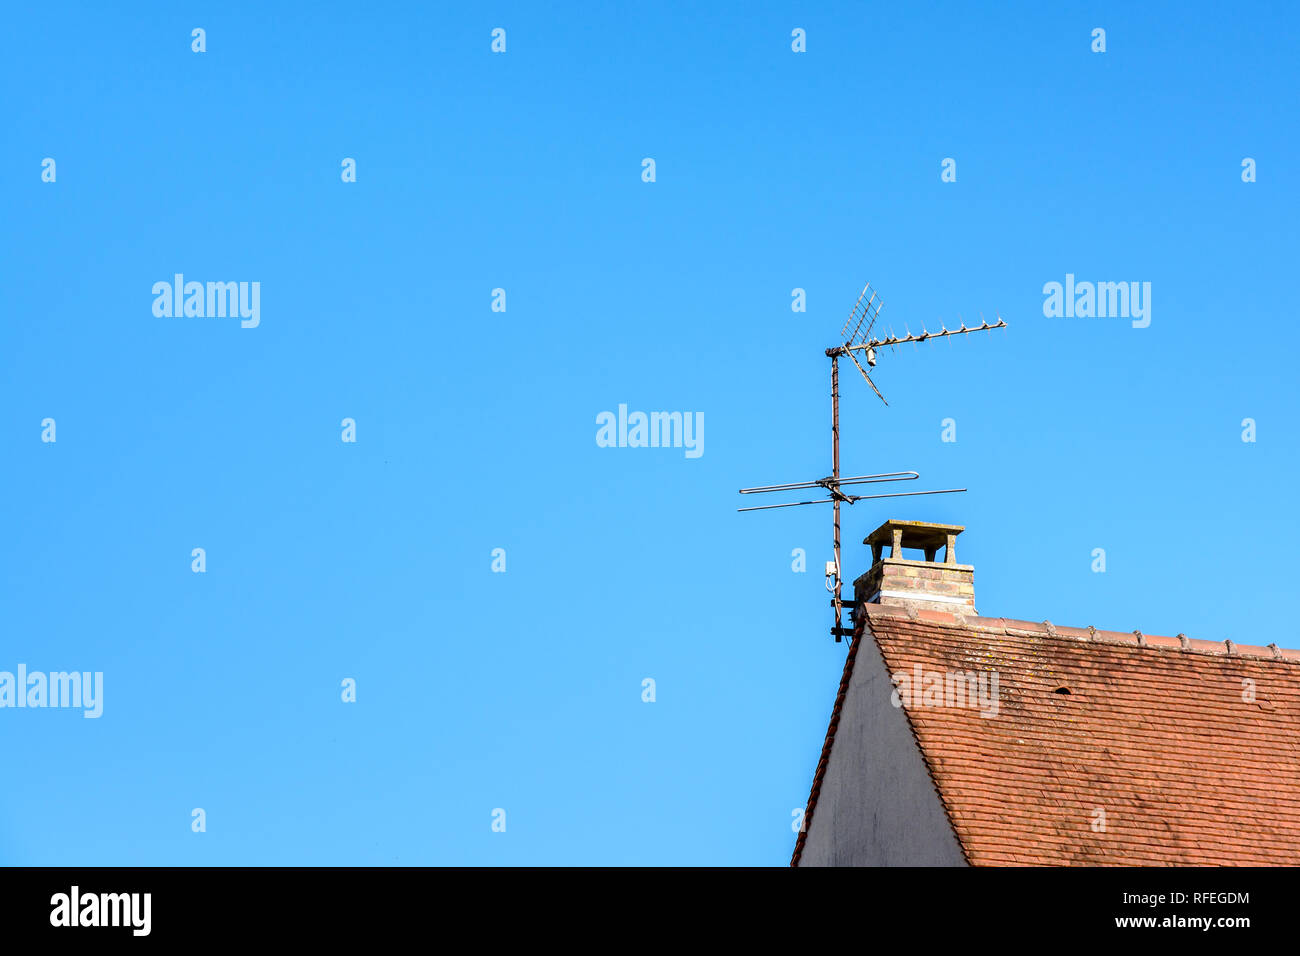 Low angle view of a TV antenna fixed to the chimney on the tile roof of a detached house against blue sky. - Stock Image